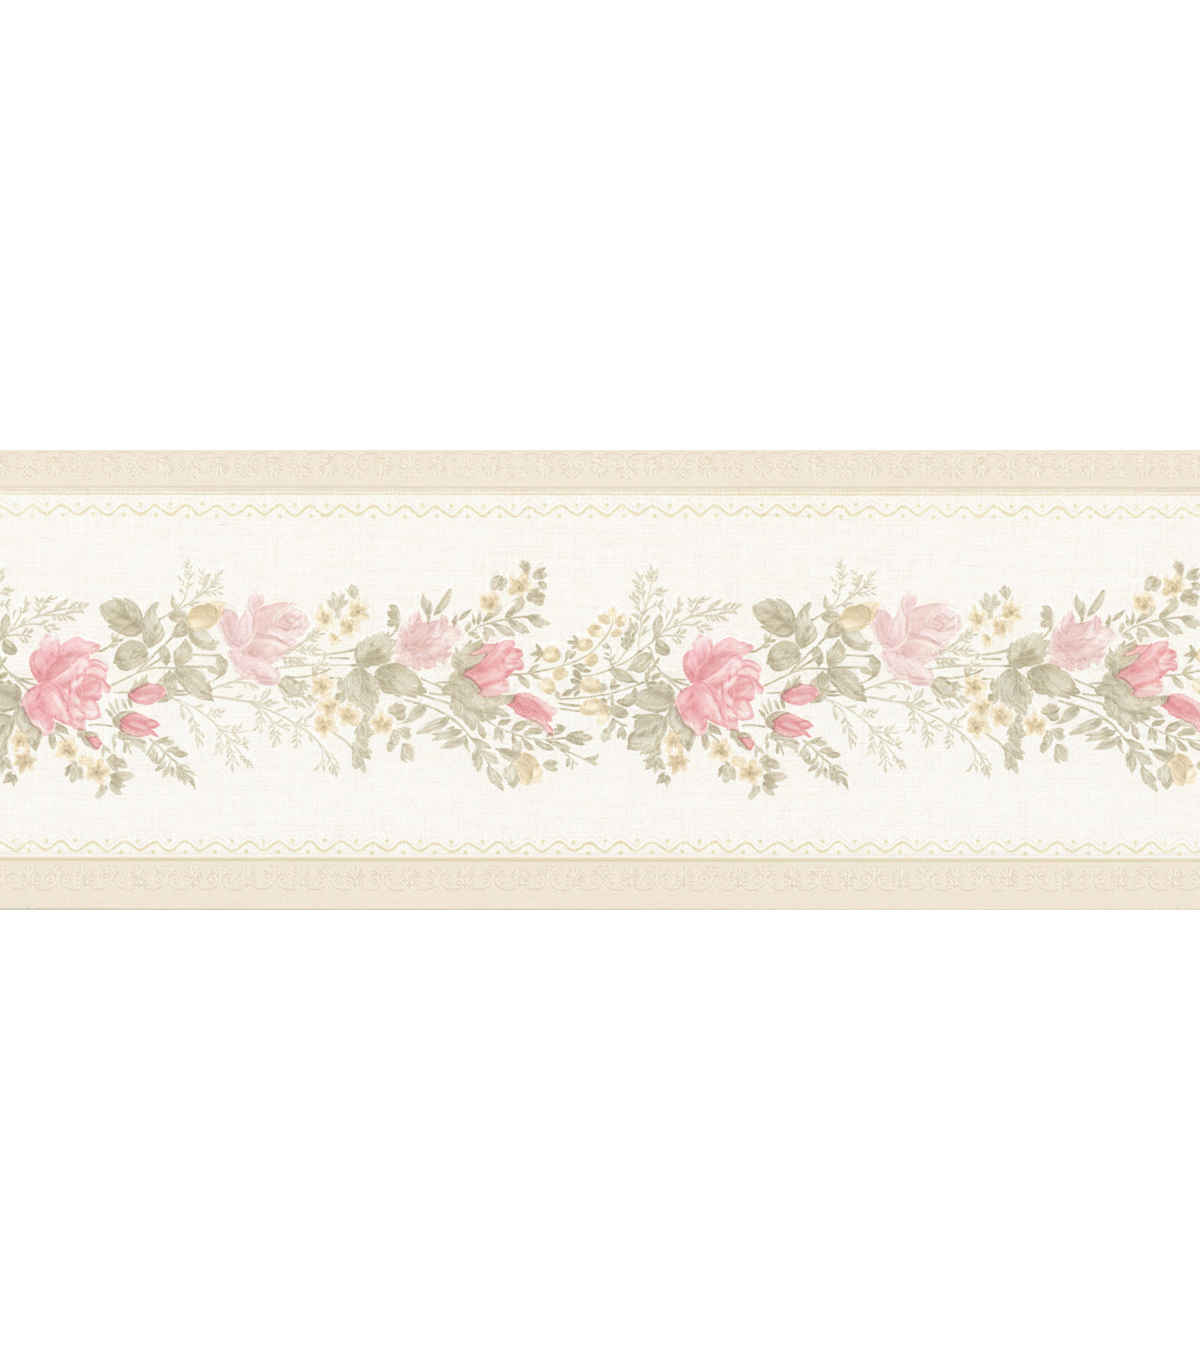 Alexa Pink Floral Meadow Wallpaper Border Sample